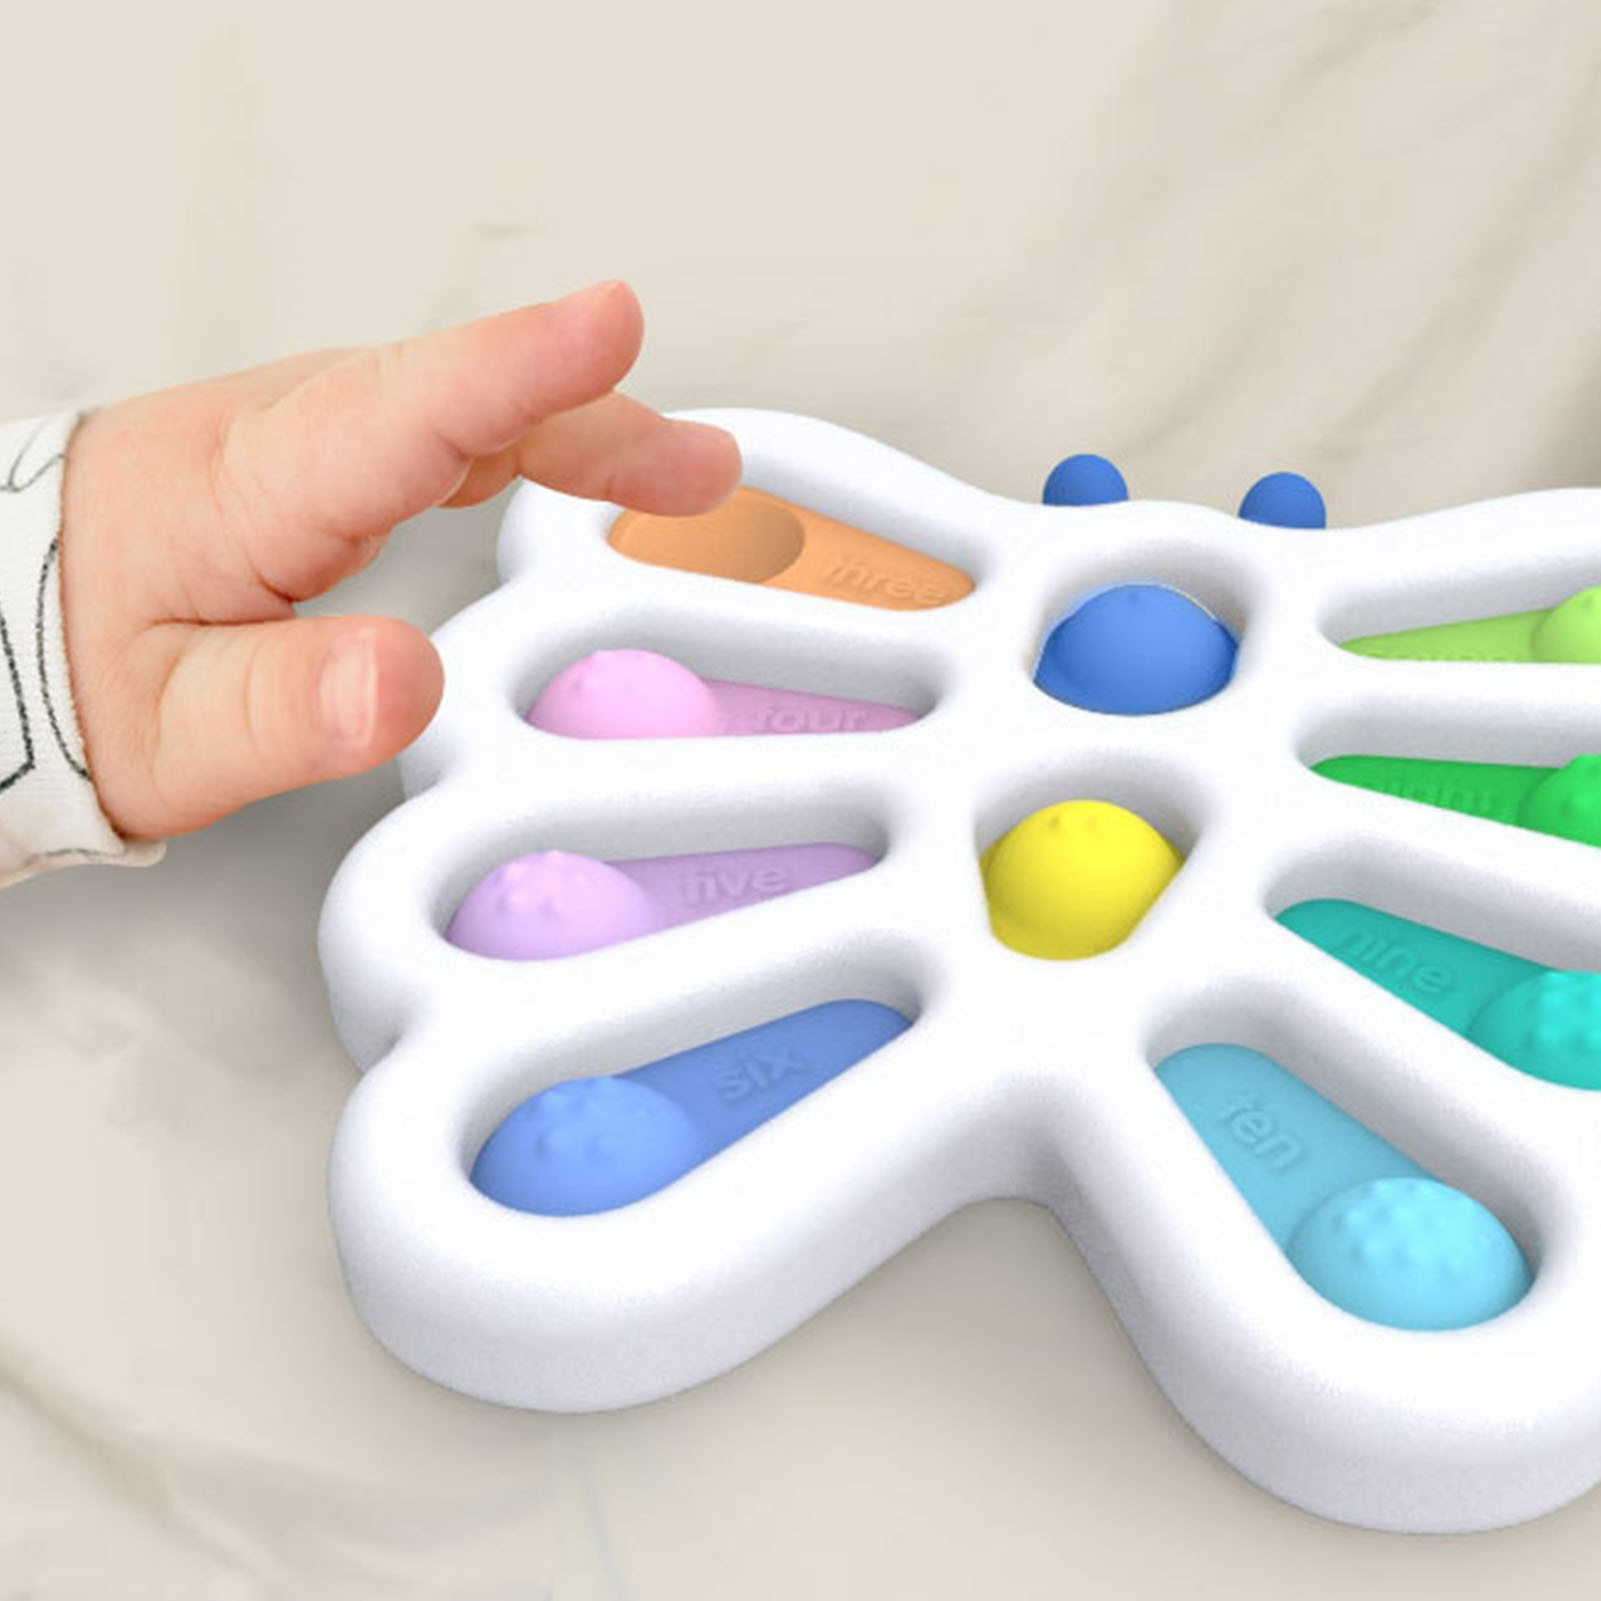 Baby Simple Fidget Dimple Toy Butterfly Plastic Silicone Stress Relief Desktop Early Educational Toys For Children Adults enlarge